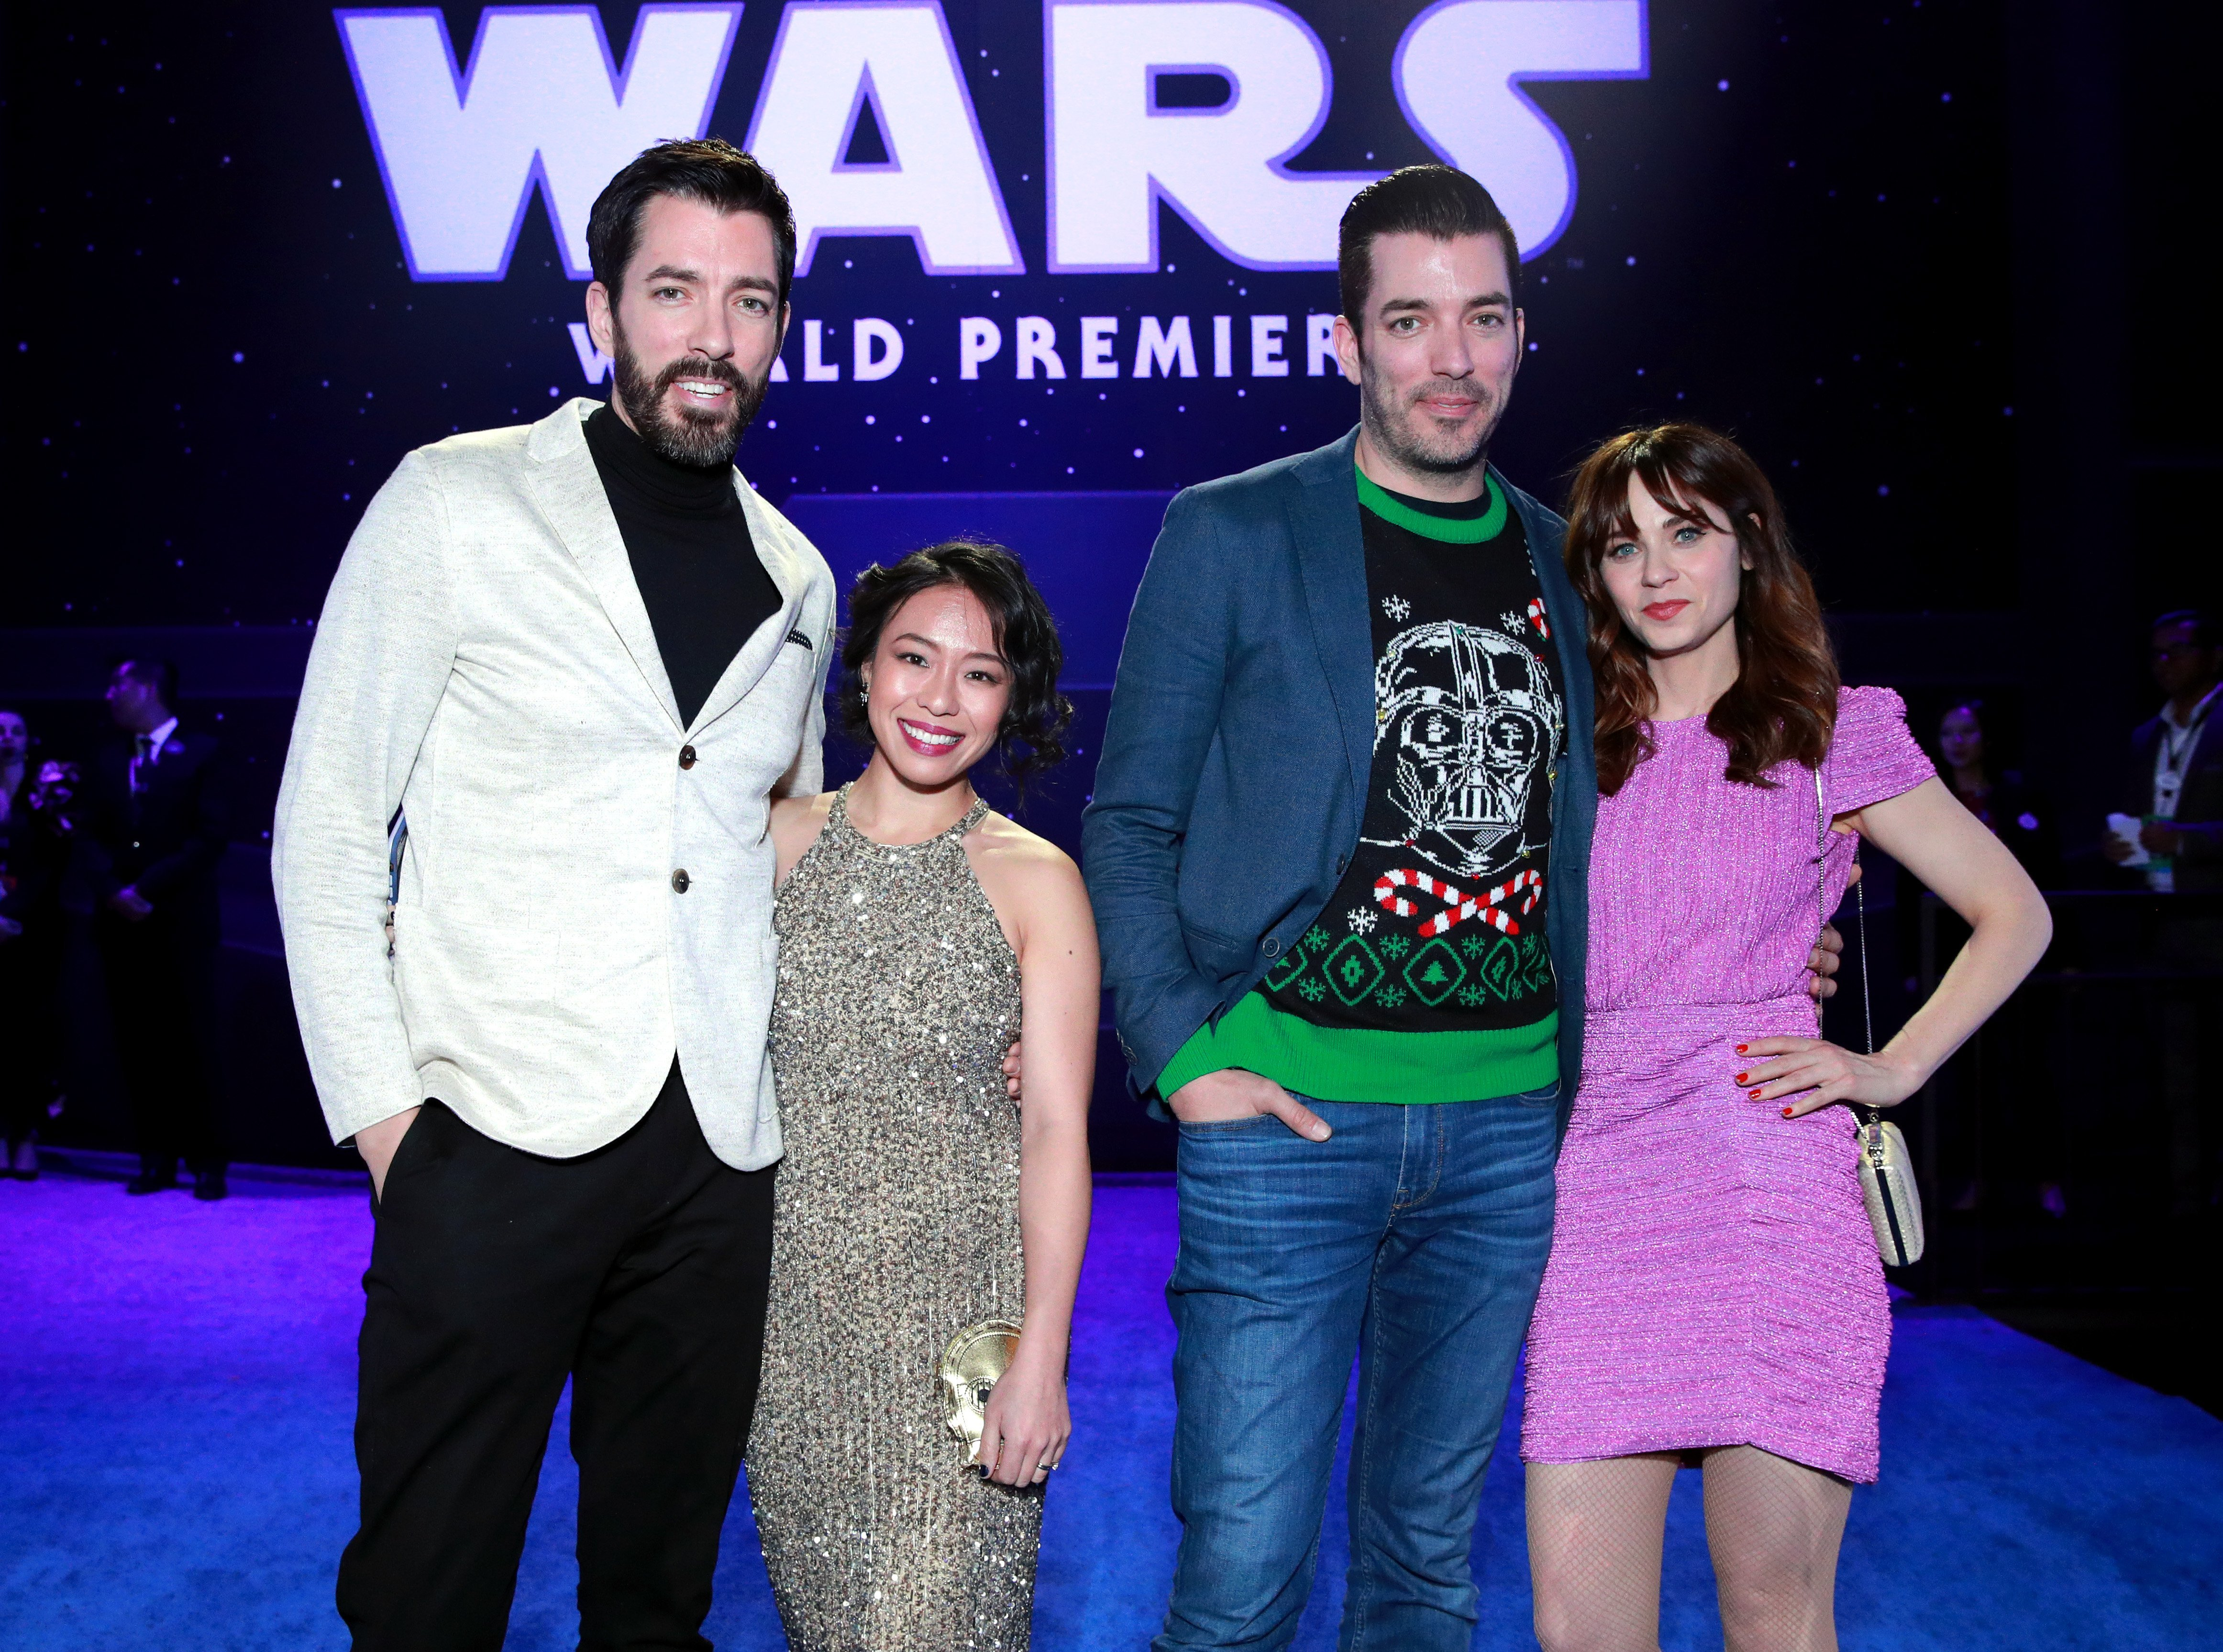 """Property Brothers"" stars Drew and Jonathan Scott with Linda Phan and Zooey Deschanel on December 16, 2019 in Hollywood, California 